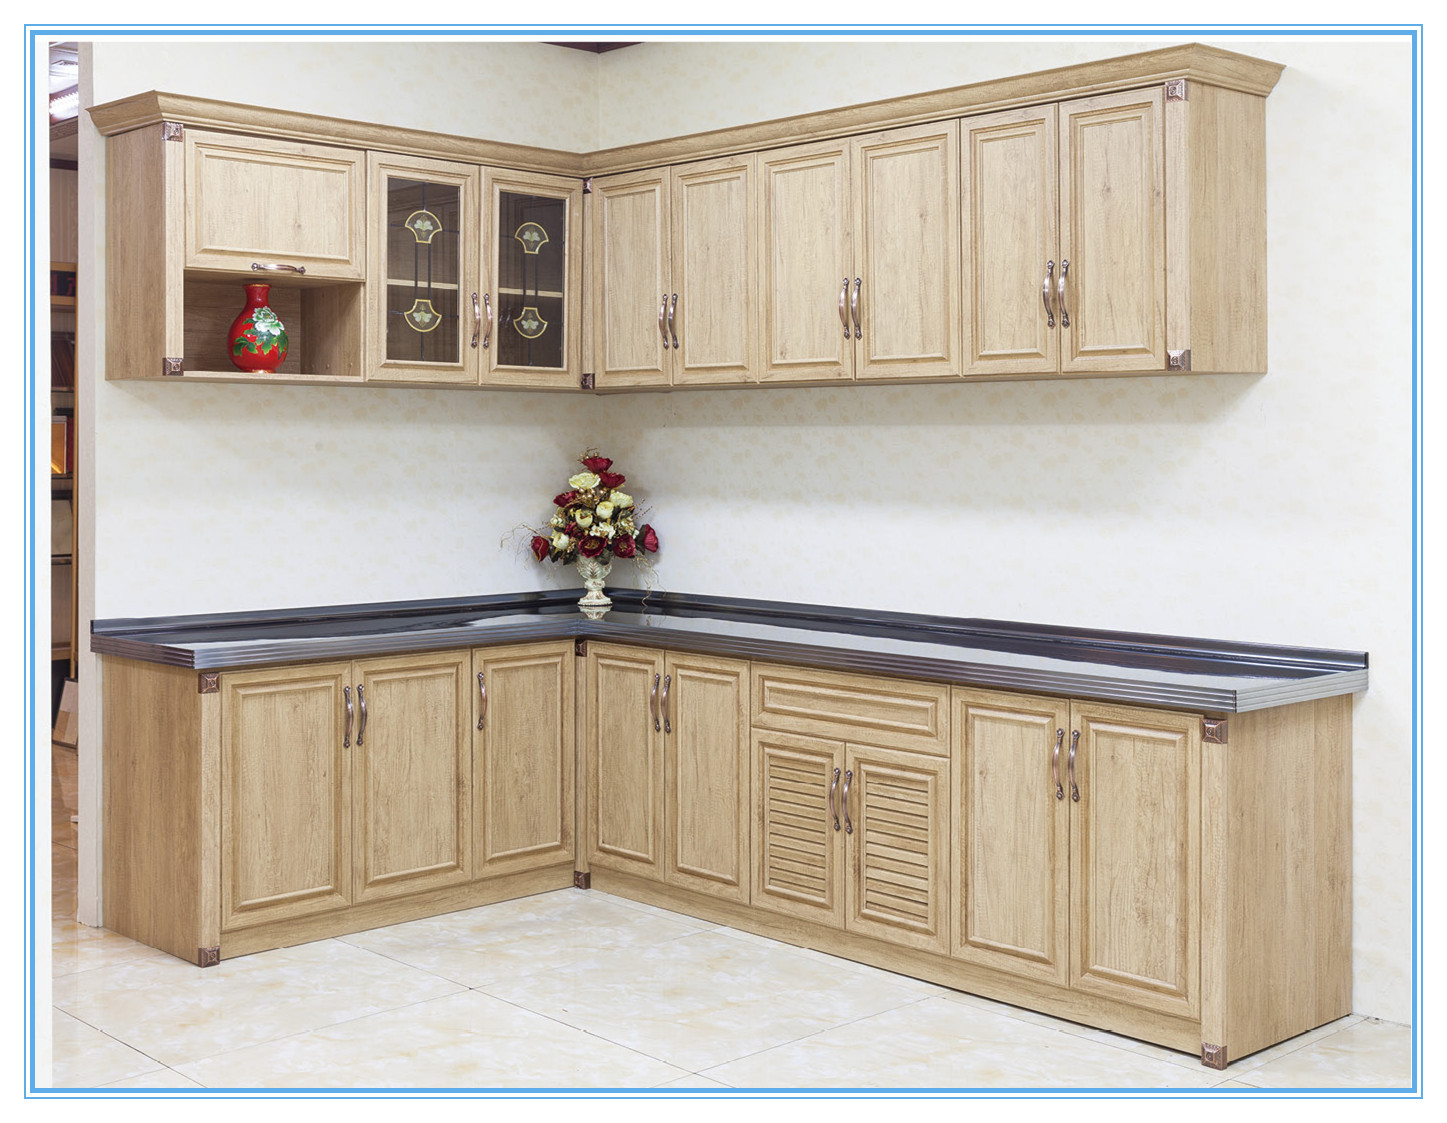 High End Aluminium Kitchen Cabinet Designs Modern Kitchen Cupboard Competitive Price Cabinet With Full Sets Accessories Buy Cabinet Kitchen